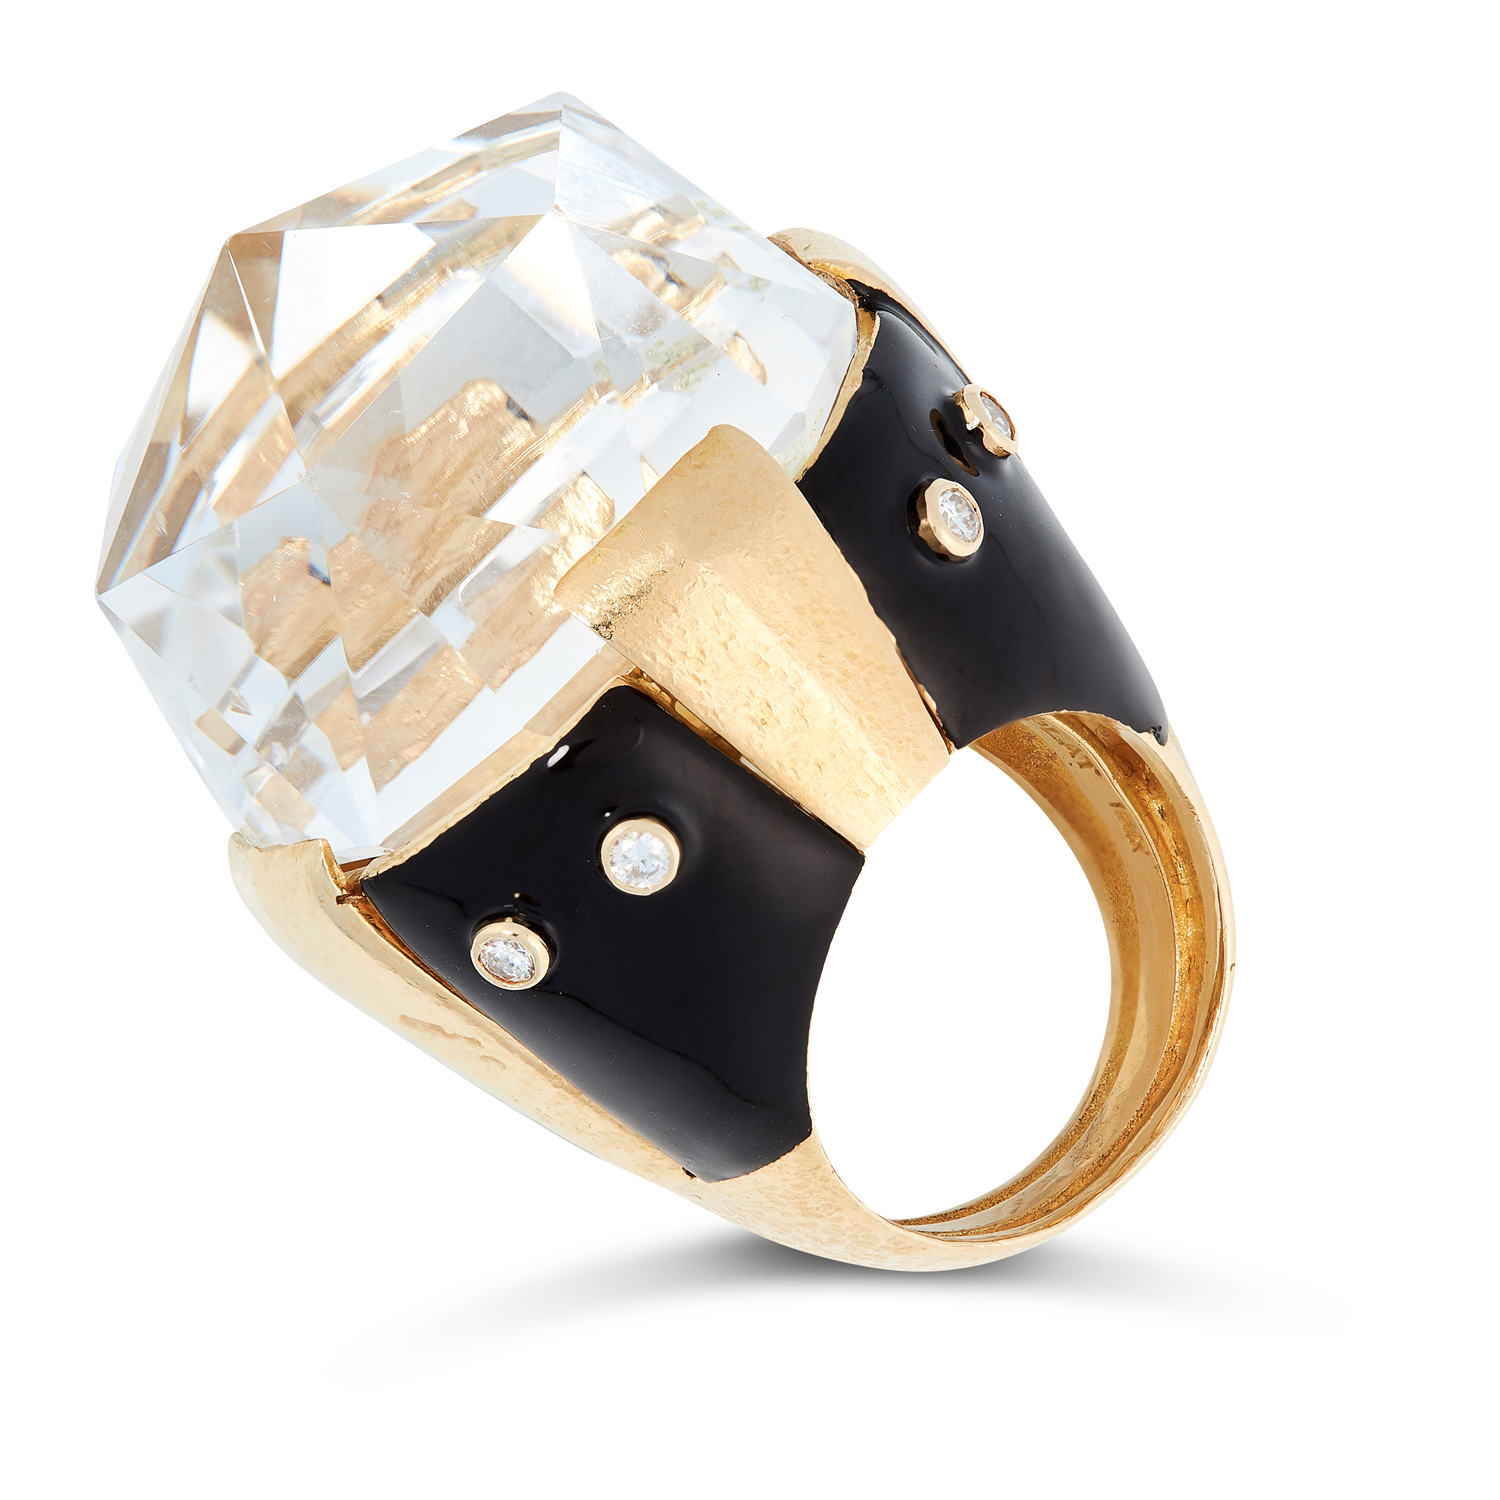 A ROCK CRYSTAL, ENAMEL AND DIAMOND RING, DAVID WEBB in 18ct yellow gold, set with a large rose cut